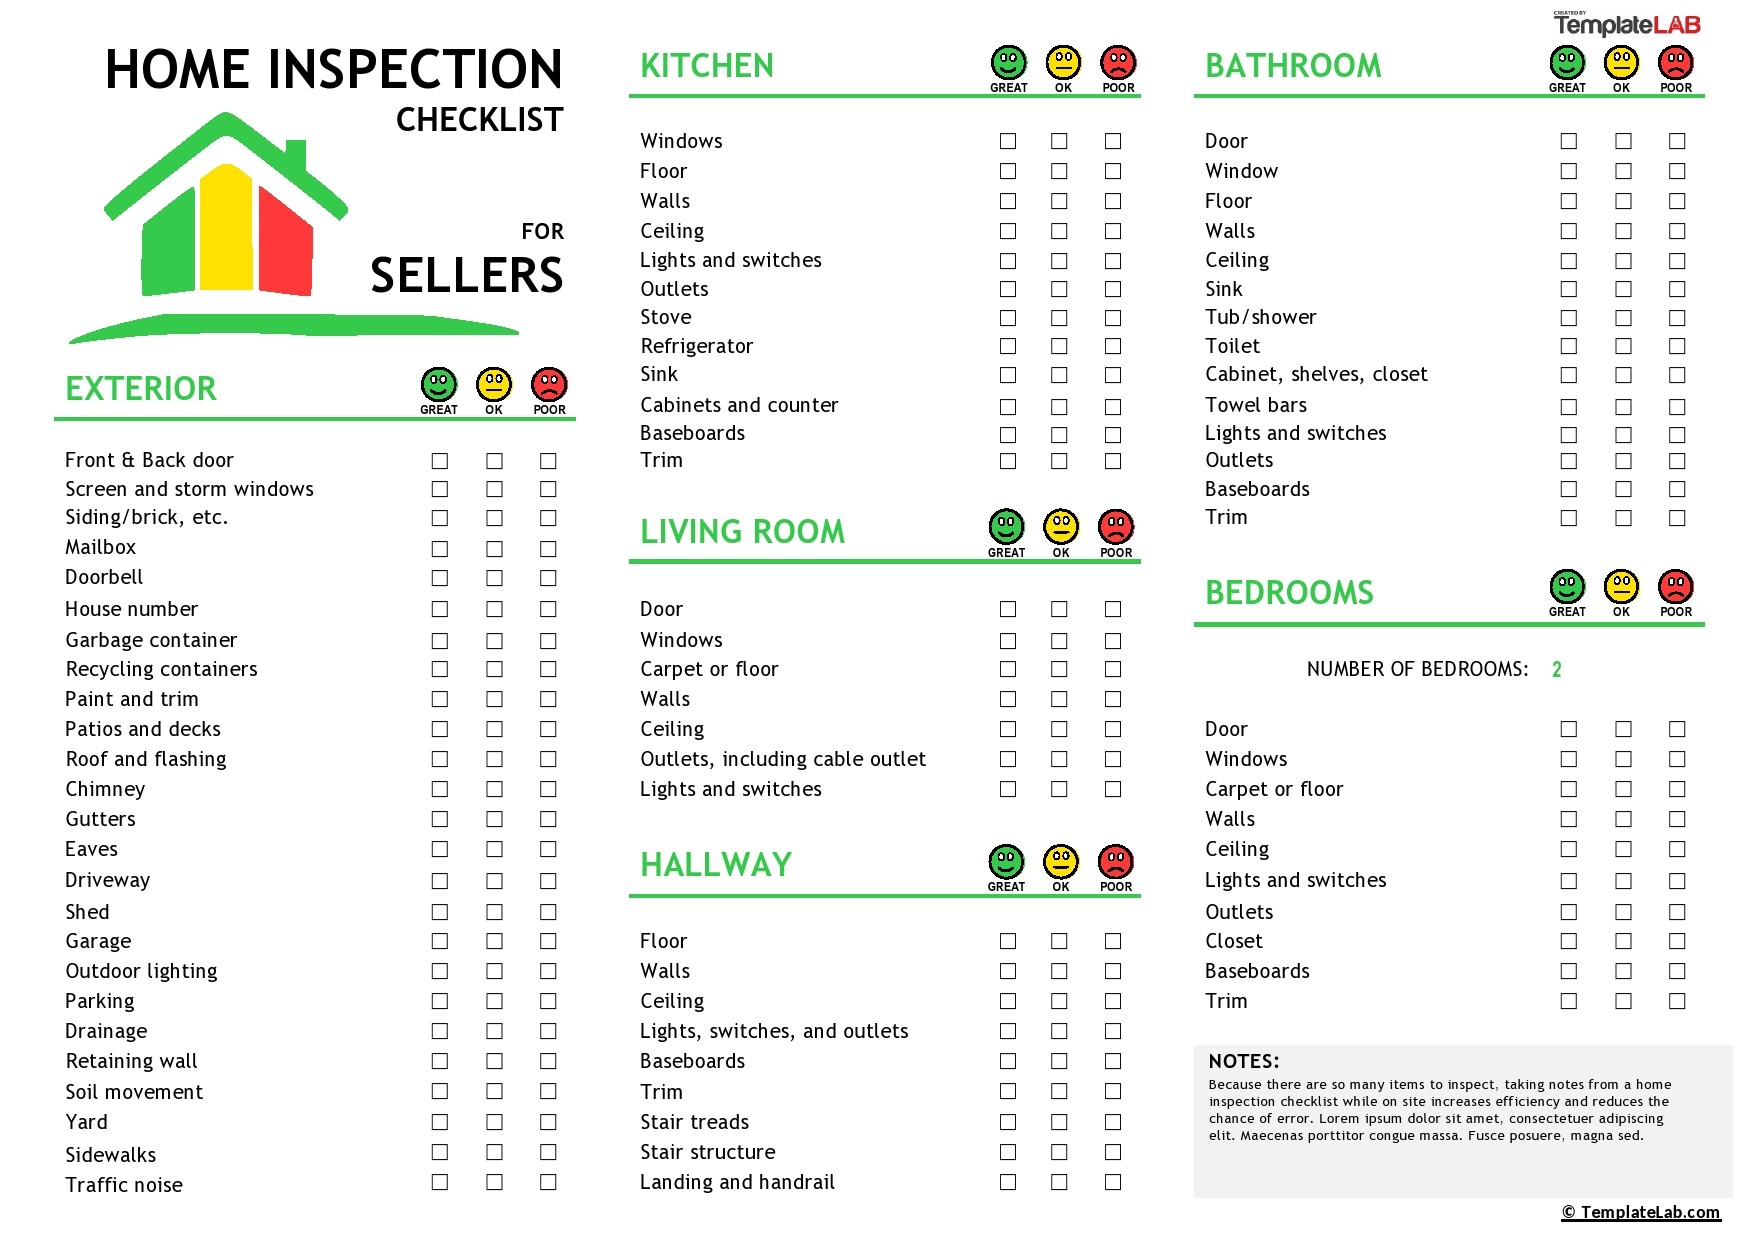 Free Home Inspection Checklist for Sellers - TemplateLab.com